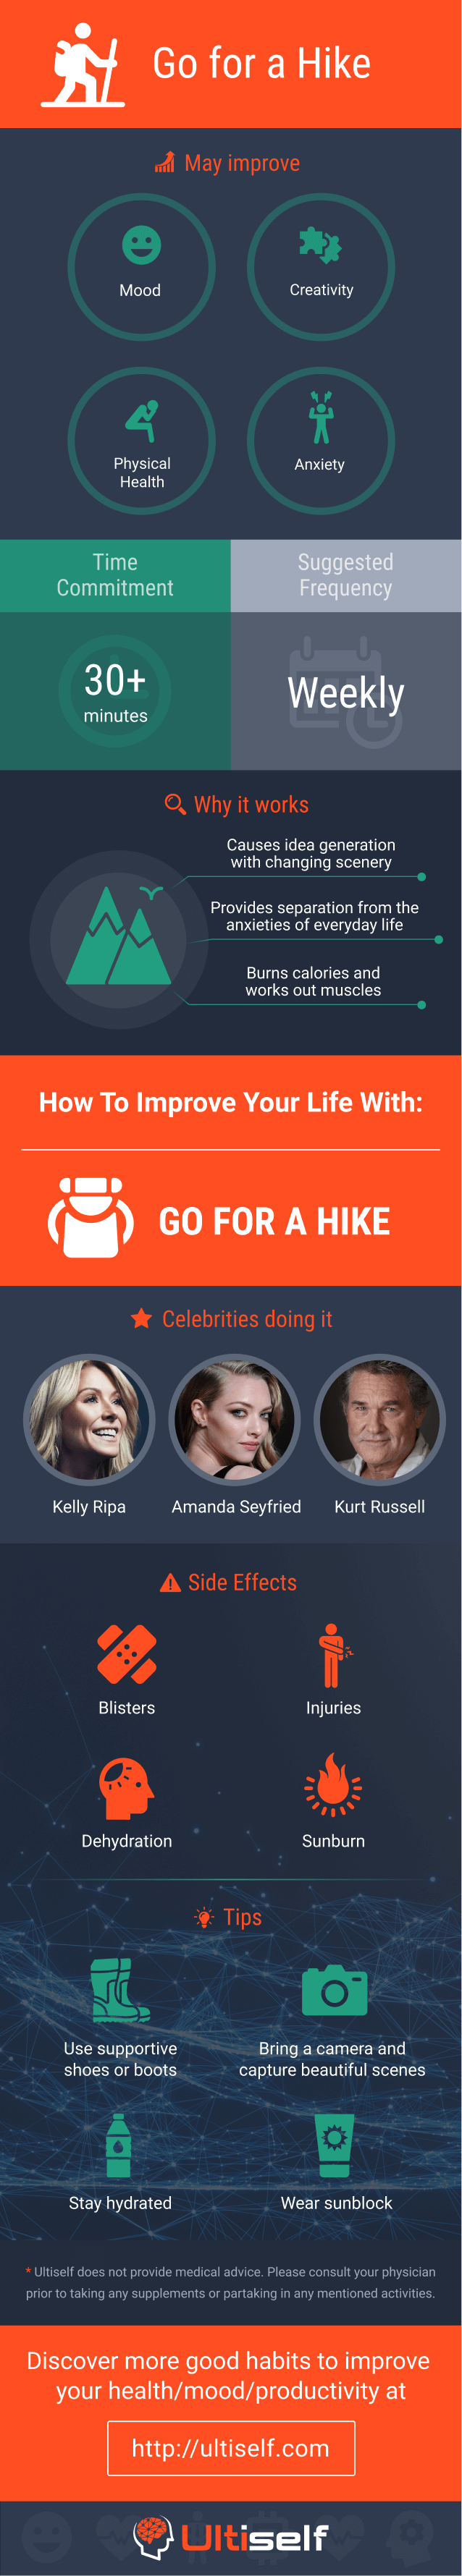 Go for a Hike infographic